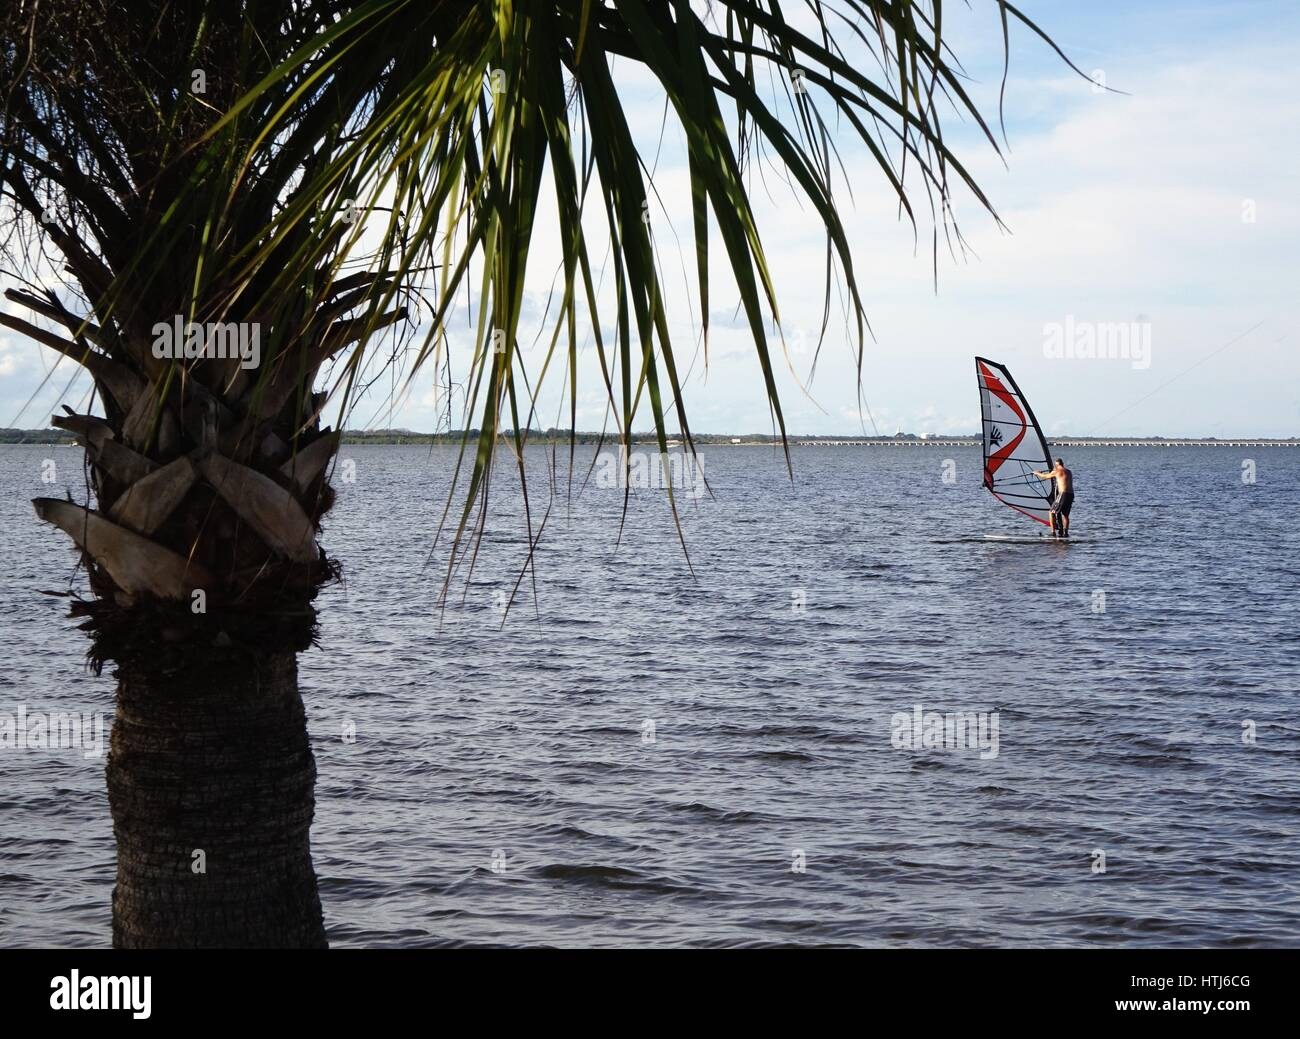 Wind surf in Indian River, Florida Immagini Stock